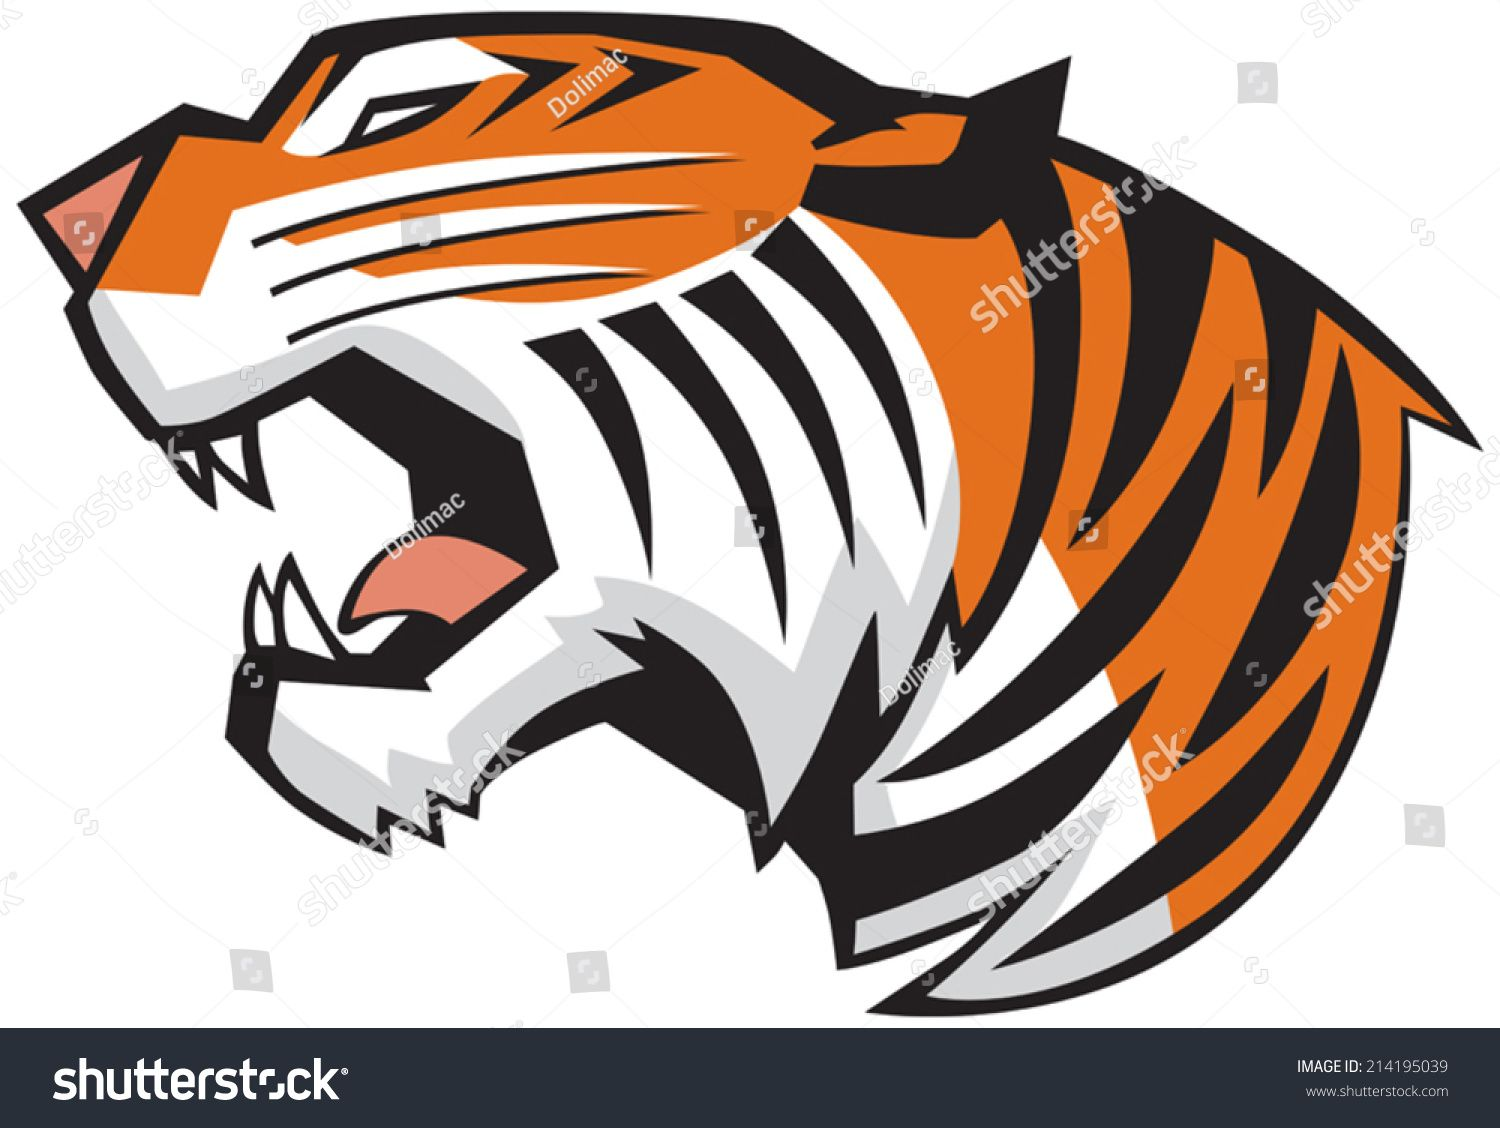 Vector Cartoon Clip Art Illustration Of A Roaring Tiger Head In A Side View Rendered In A Graphic Style Cartoon Clip Art Tiger Illustration Illustration Art